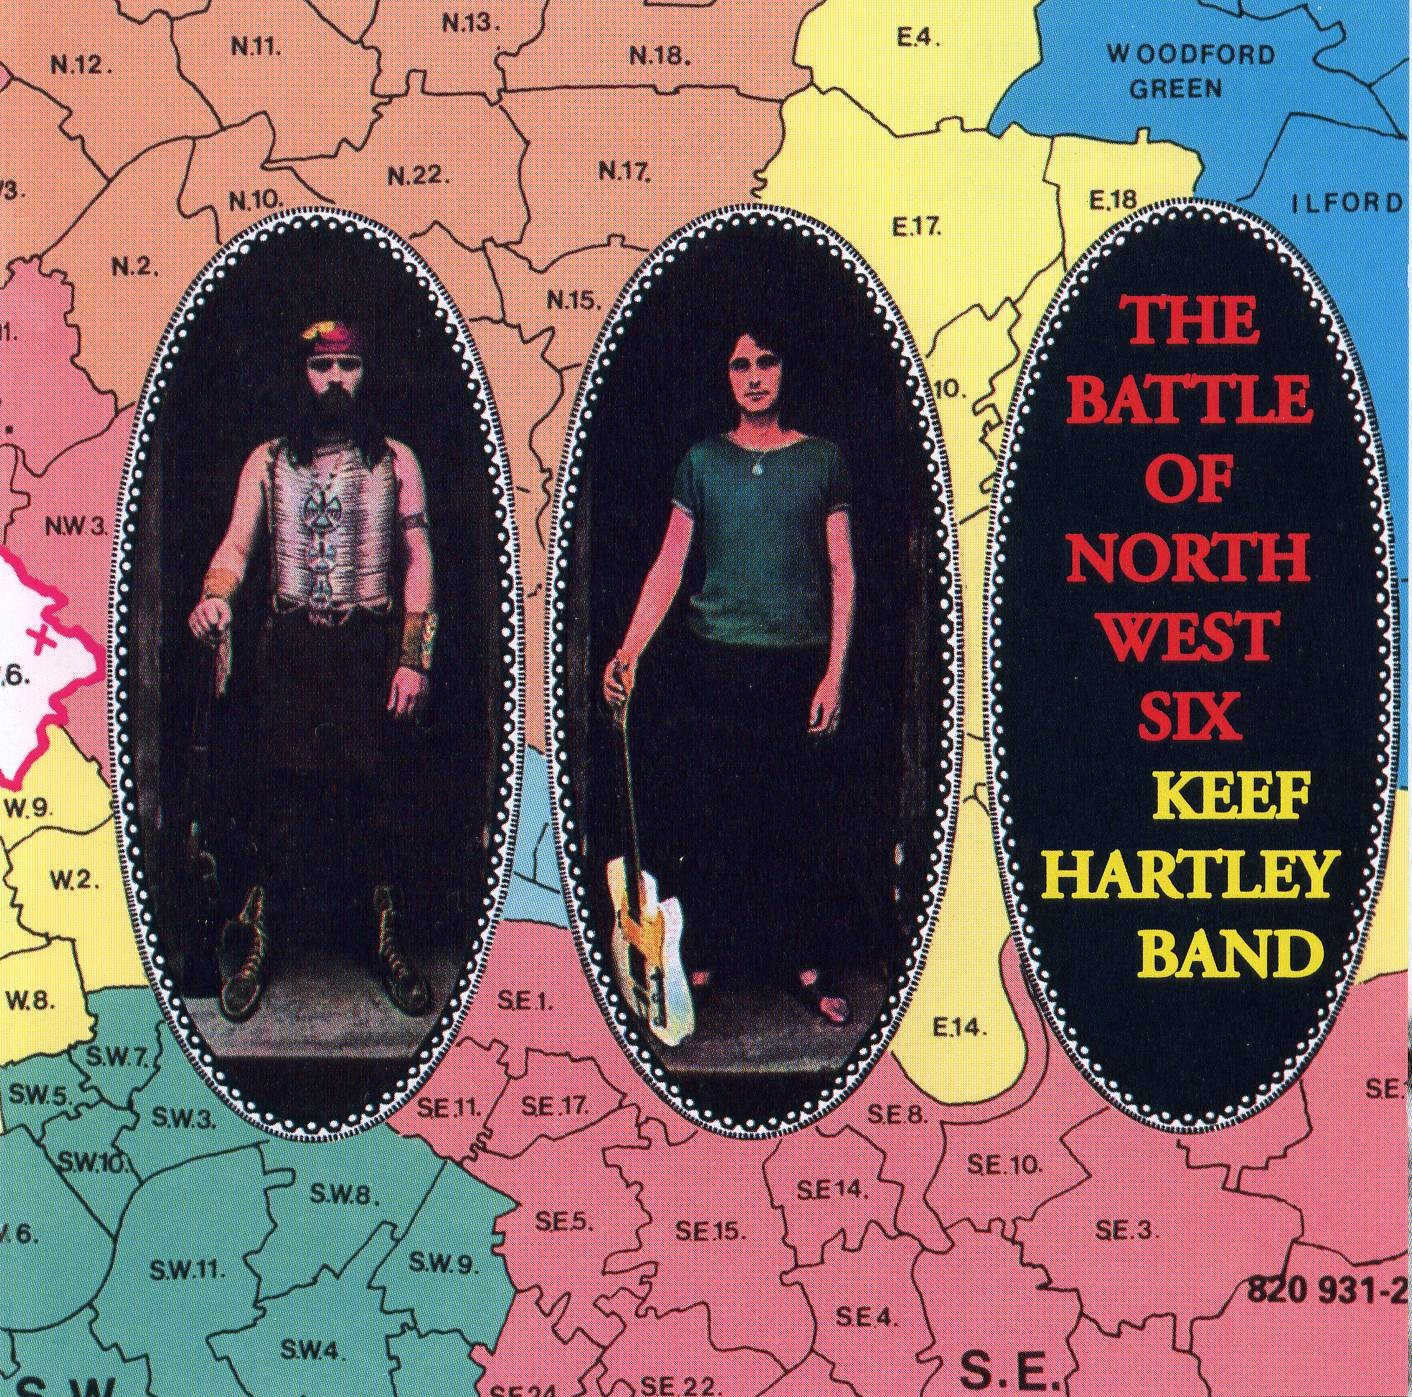 keef_hartley_band_the_battle_of_north_west_six